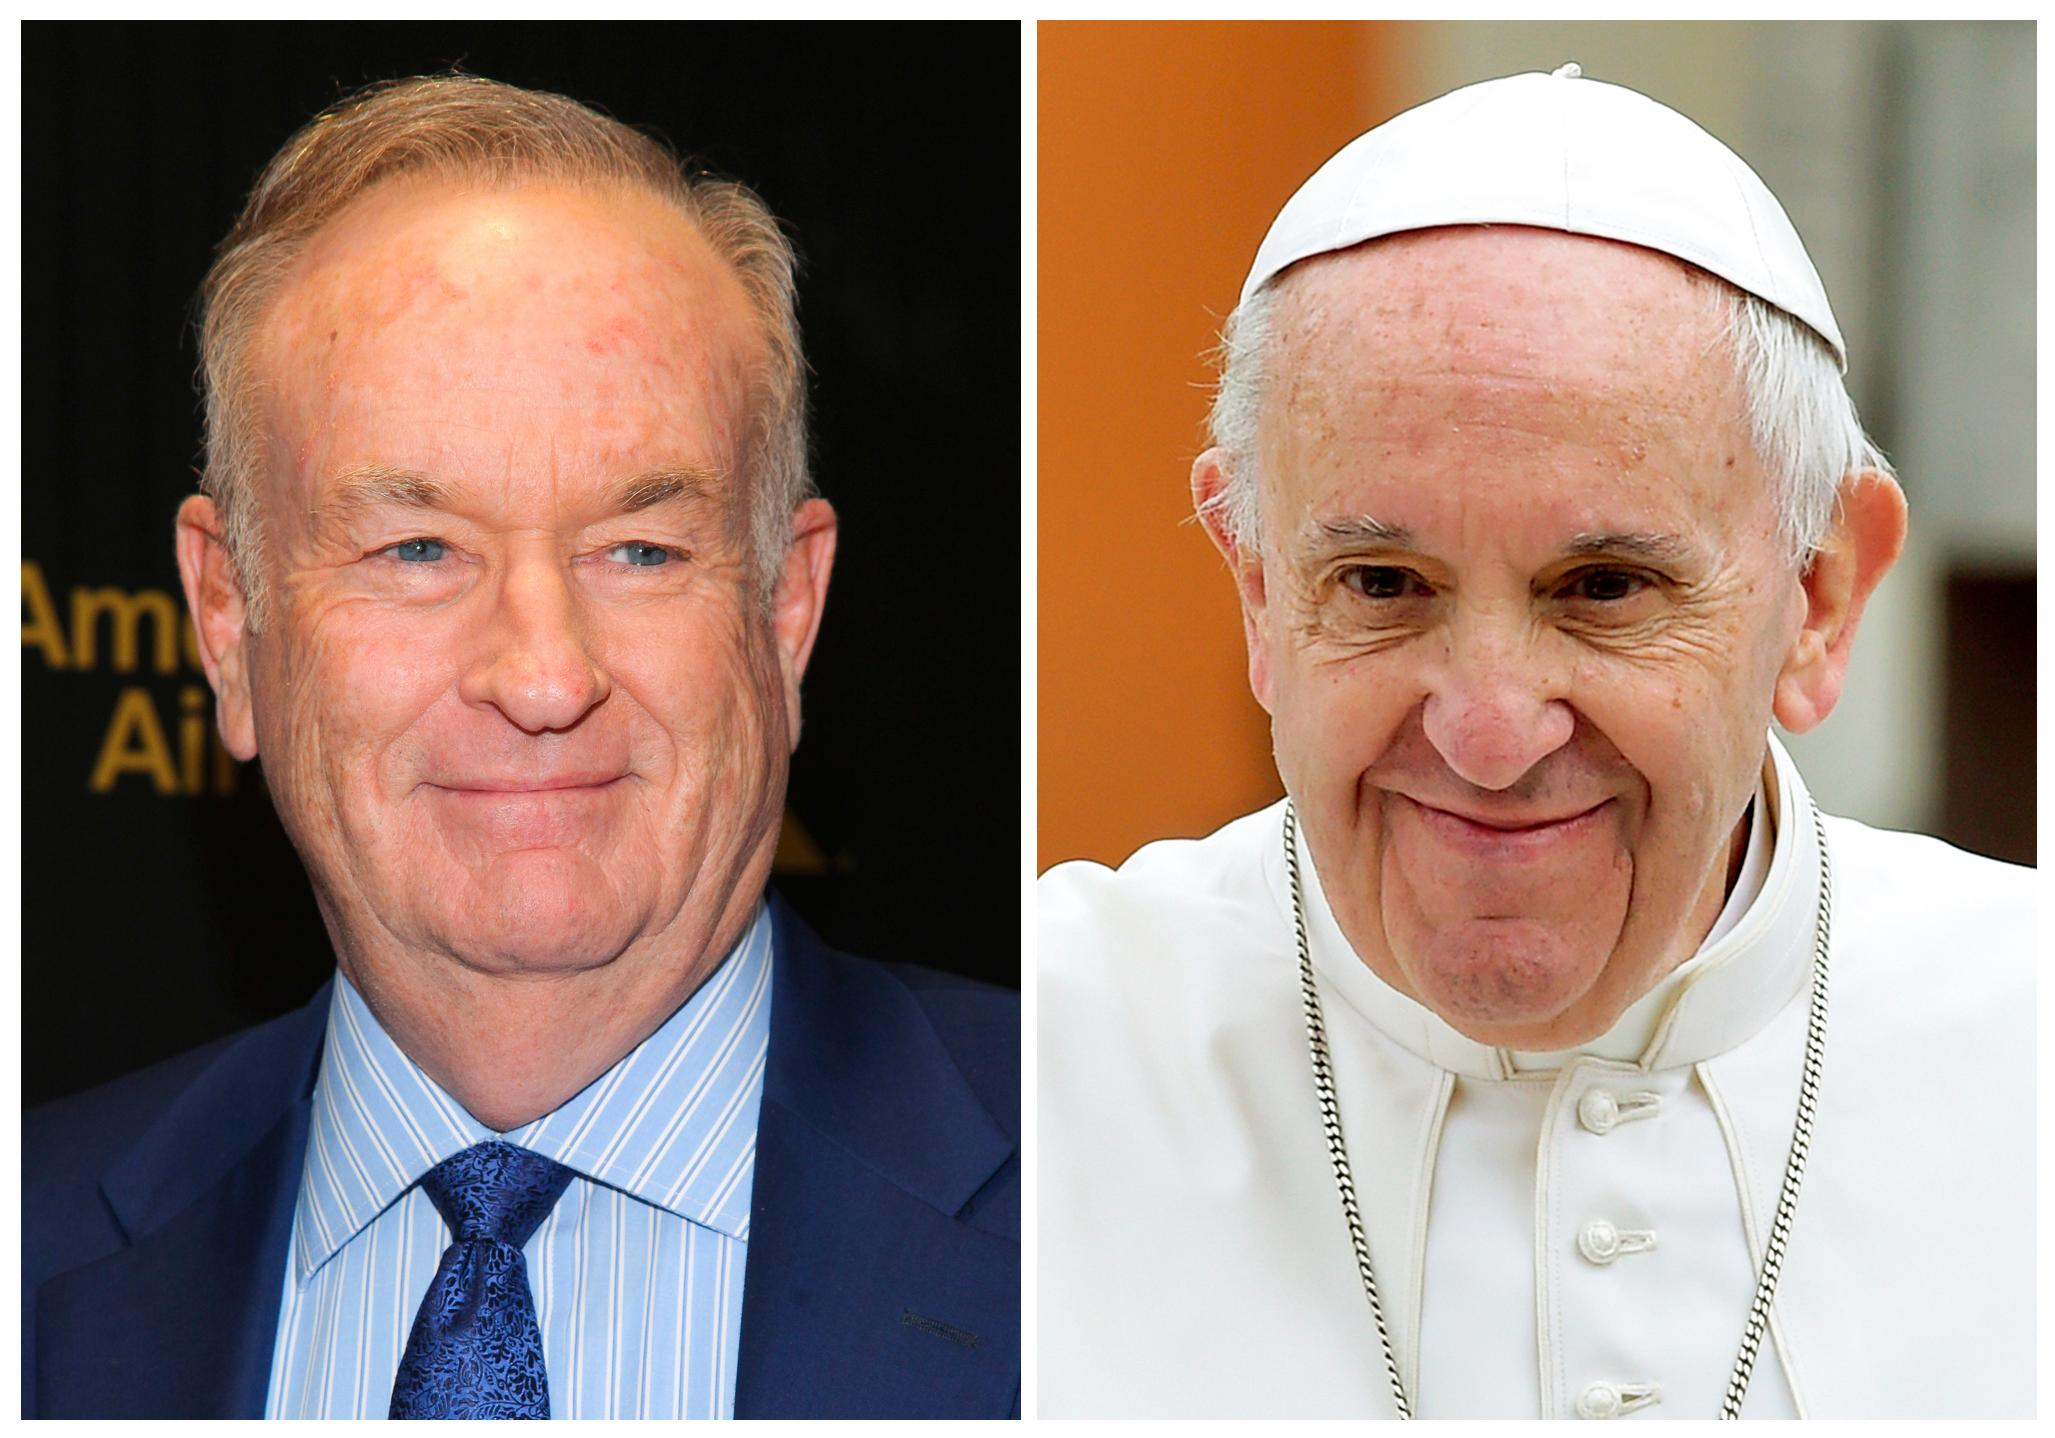 "FILE - In this combination photo, Fox News Channel personality Bill O'Reilly appears at The Hollywood Reporter's ""35 Most Powerful People in Media"" celebration on April 6, 2016, in New York, left, and Pope Francis leaves after celebrating Mass in Piazza Martiri Square, in Carpi, northern Italy, on April 2, 2017.   O'Reilly has had a brief handshake with Pope Francis as sexual harassment allegations dog him at home in the U.S. He is on a two-week vacation that on Wednesday took him to Francis' general audience in St. Peter's Square. His trip came as Fox News Channel's parent company weighs accusations that a woman's career was slowed when she spurned O'Reilly's advances. Dozens of his show's advertisers have fled following reports of harassment settlements paid to other women. O'Reilly has denied wrongdoing. (AP Photo/Andy Kropa, left, Marco Vasini, Files)"